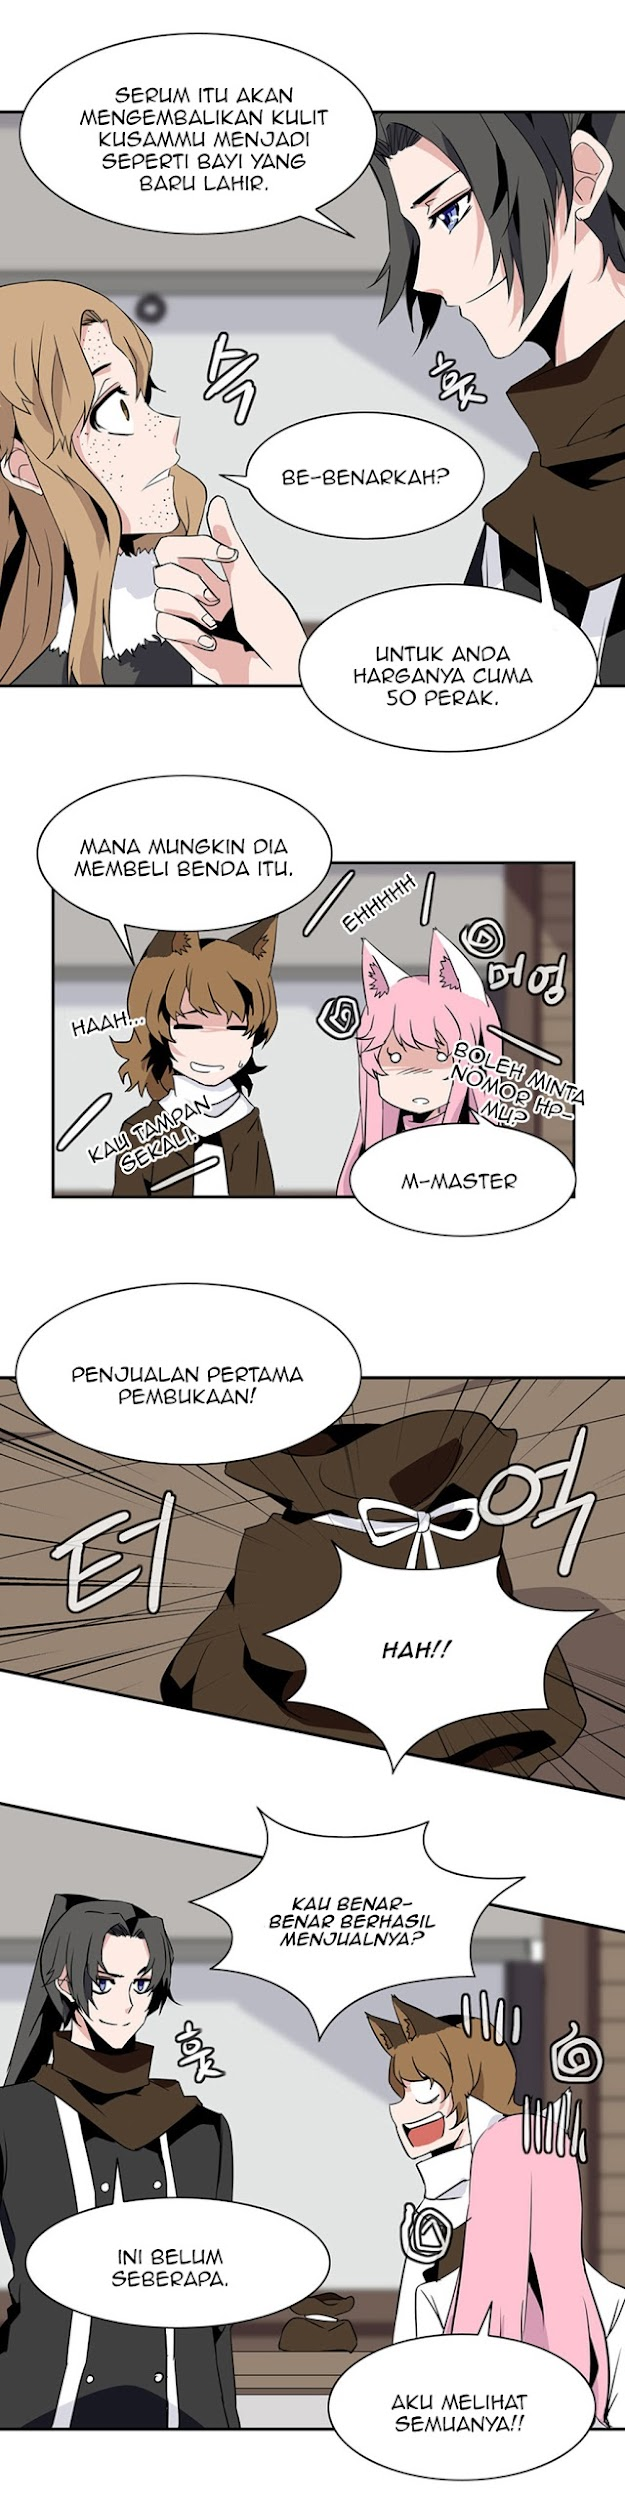 Dilarang COPAS - situs resmi www.mangacanblog.com - Komik wizardly tower 030 - chapter 30 31 Indonesia wizardly tower 030 - chapter 30 Terbaru 6|Baca Manga Komik Indonesia|Mangacan